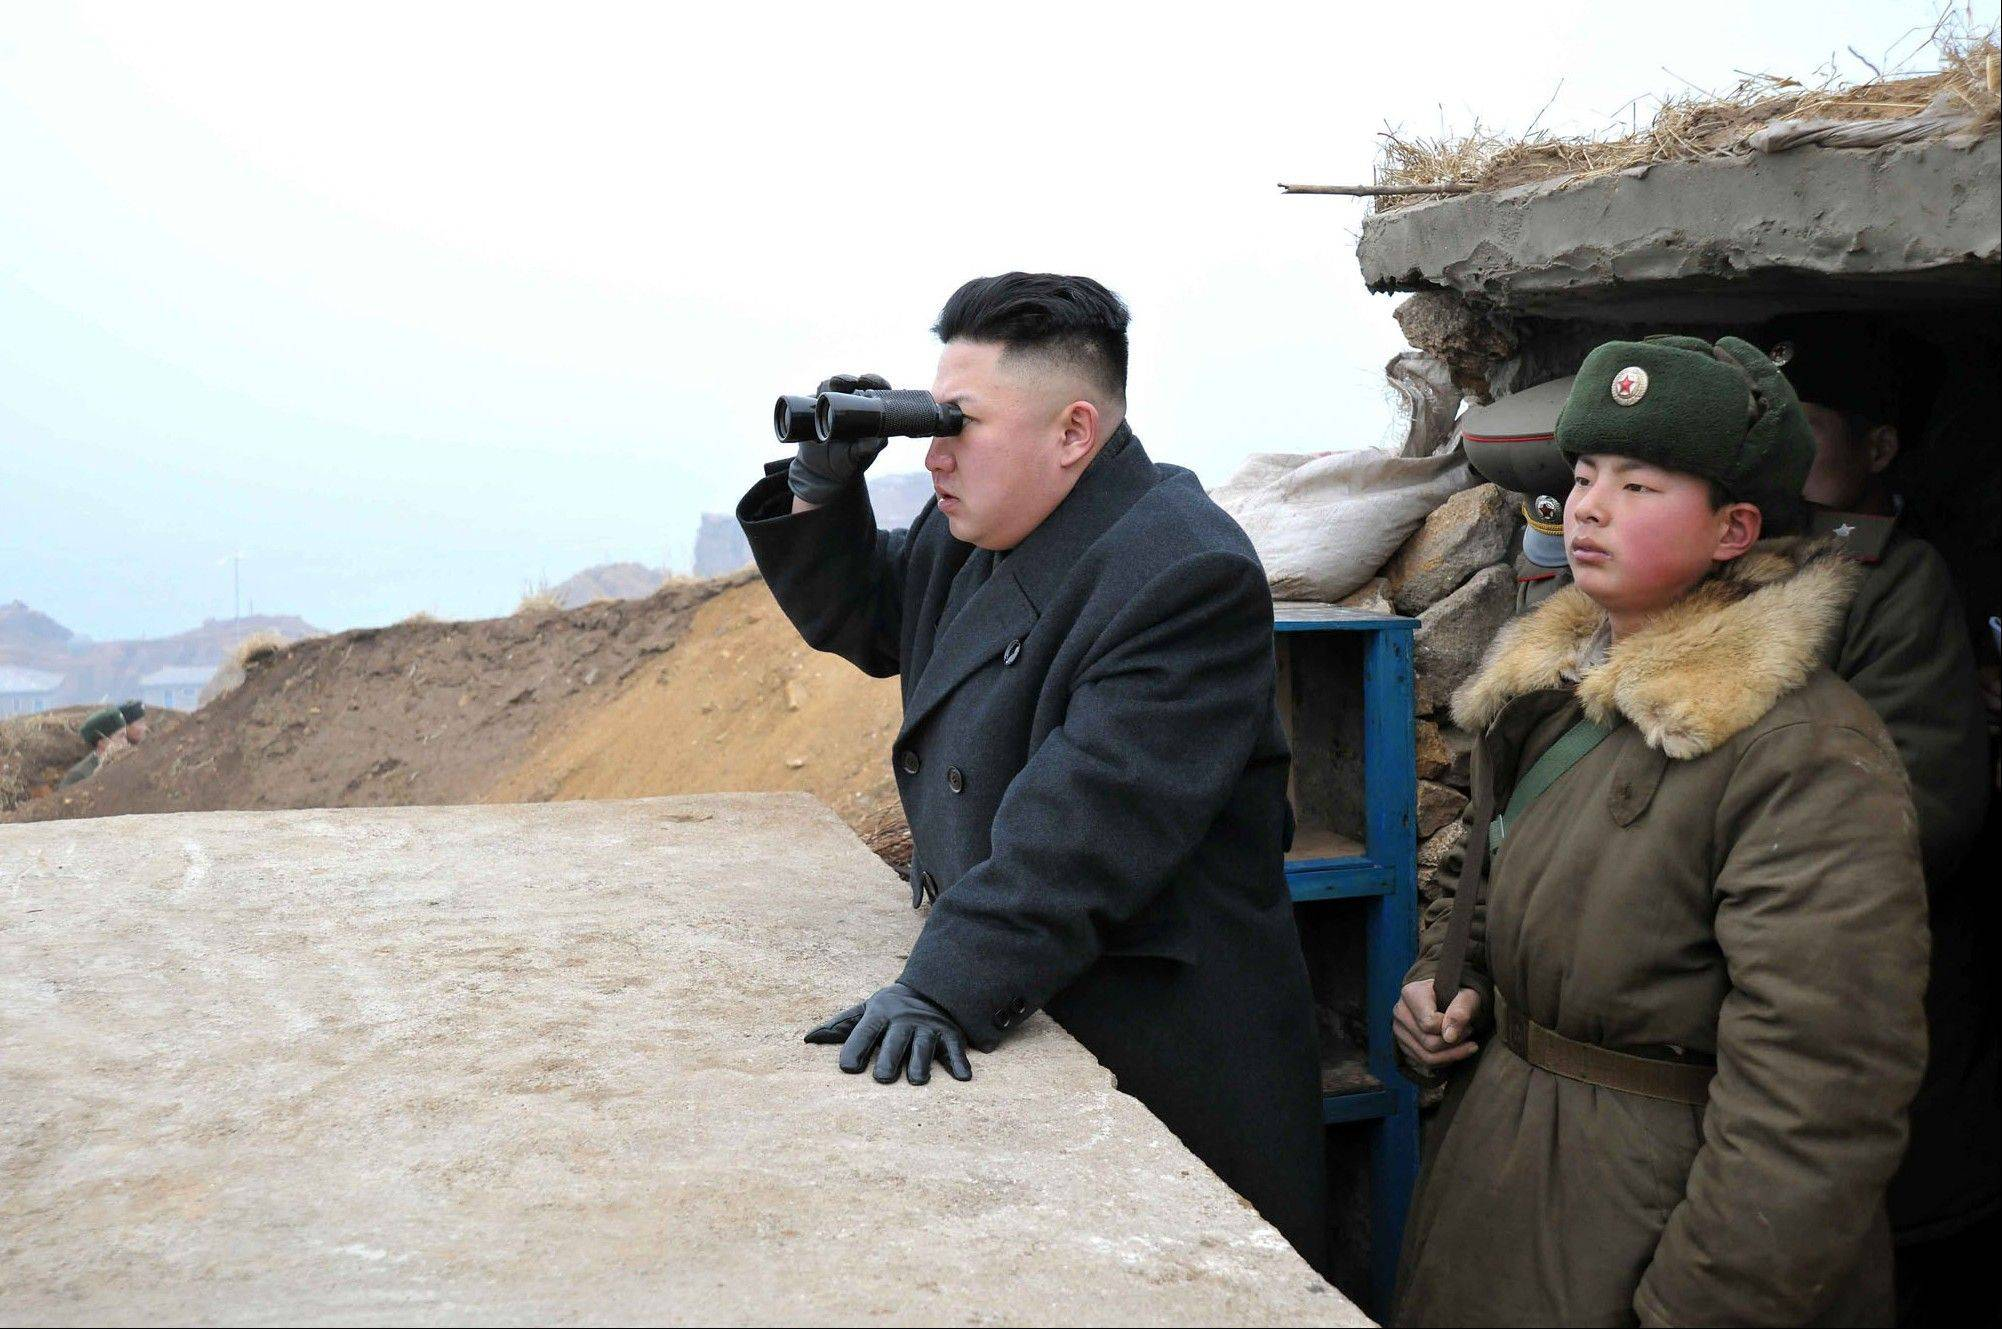 Associated Press/March 7, 2013 North Korean leader Kim Jong Un, center, uses binoculars to look at the South�s territory from an observation post at the military unit on Jangjae islet, located in the southernmost part of North Korea�s border with South Korea.